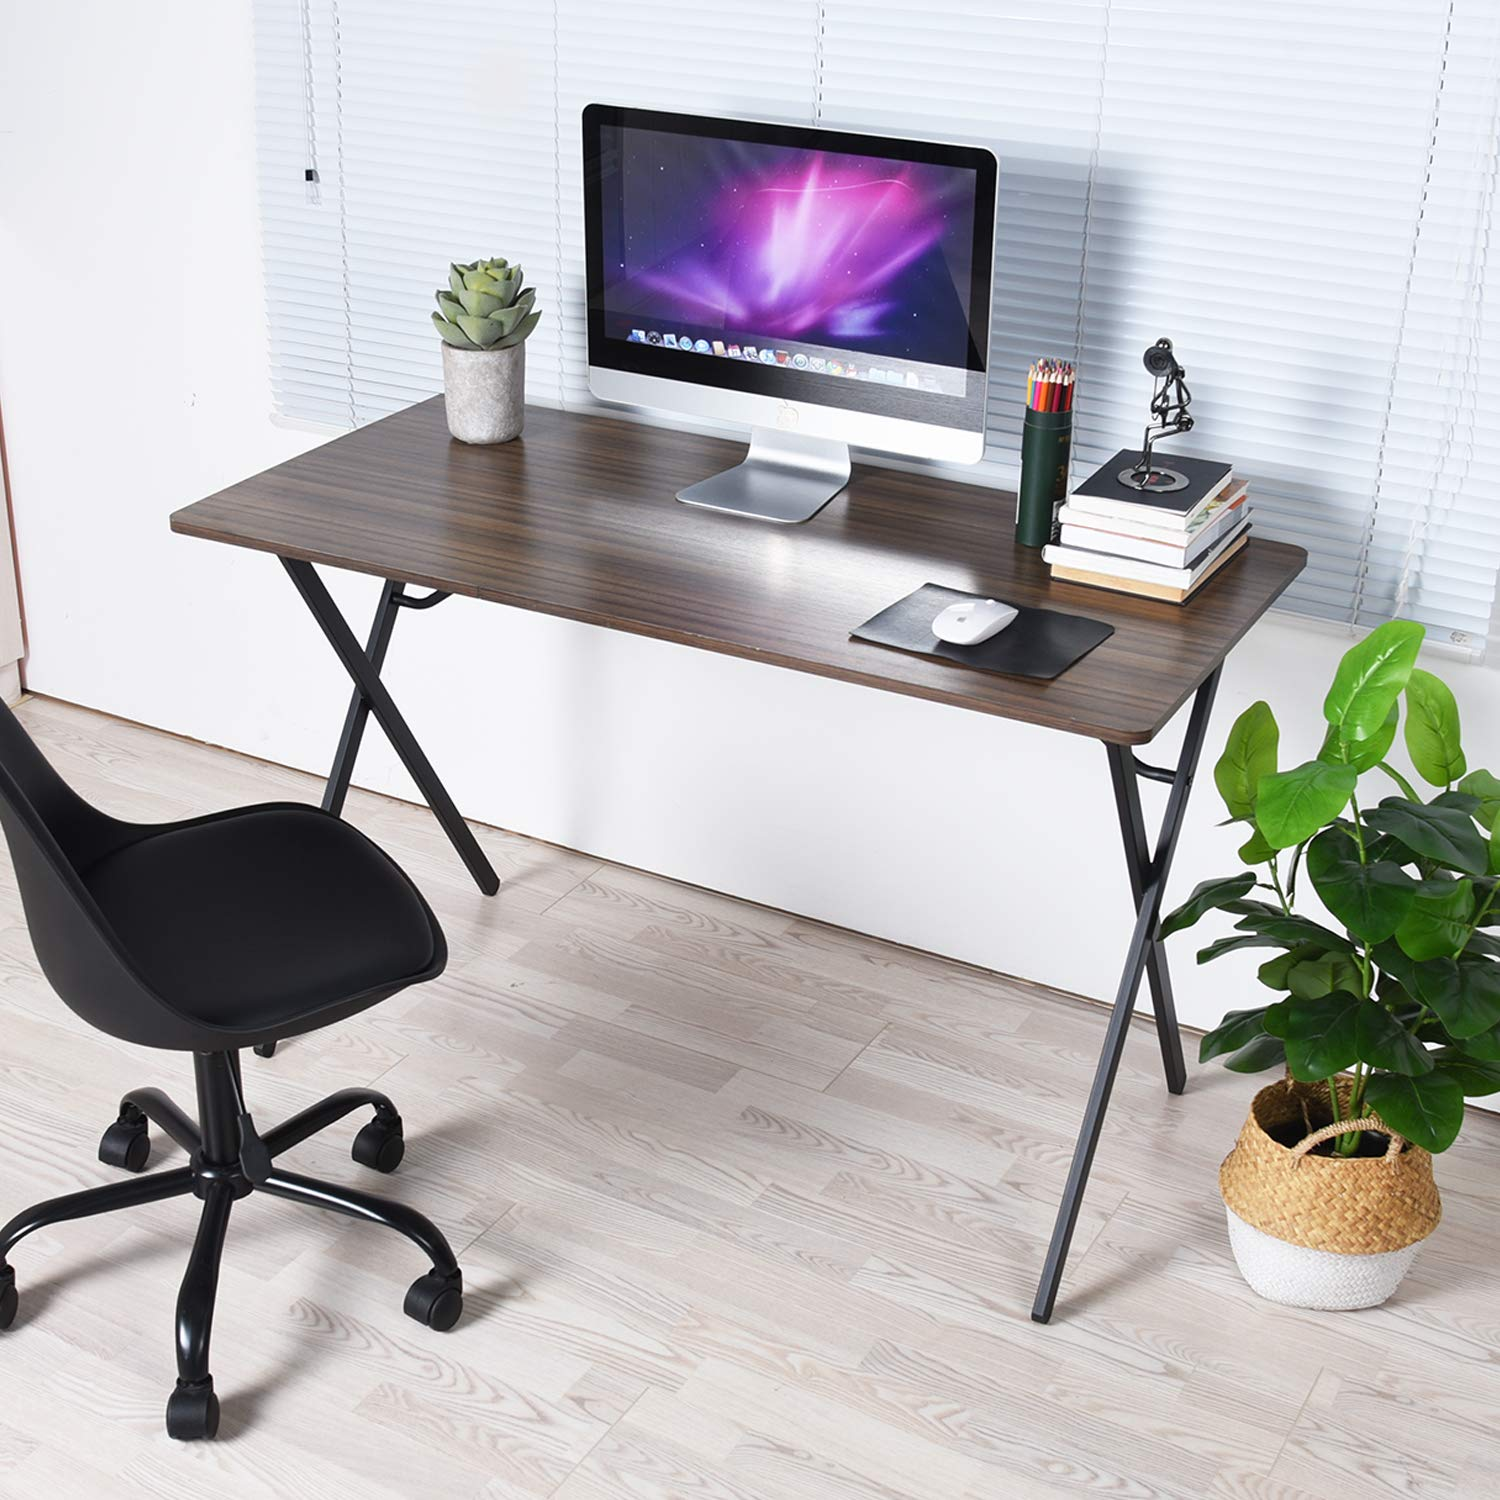 GreenForest Computer Writing Desk 47'' Modern Simple Home Office PC Laptop Table Workstation, Walnut